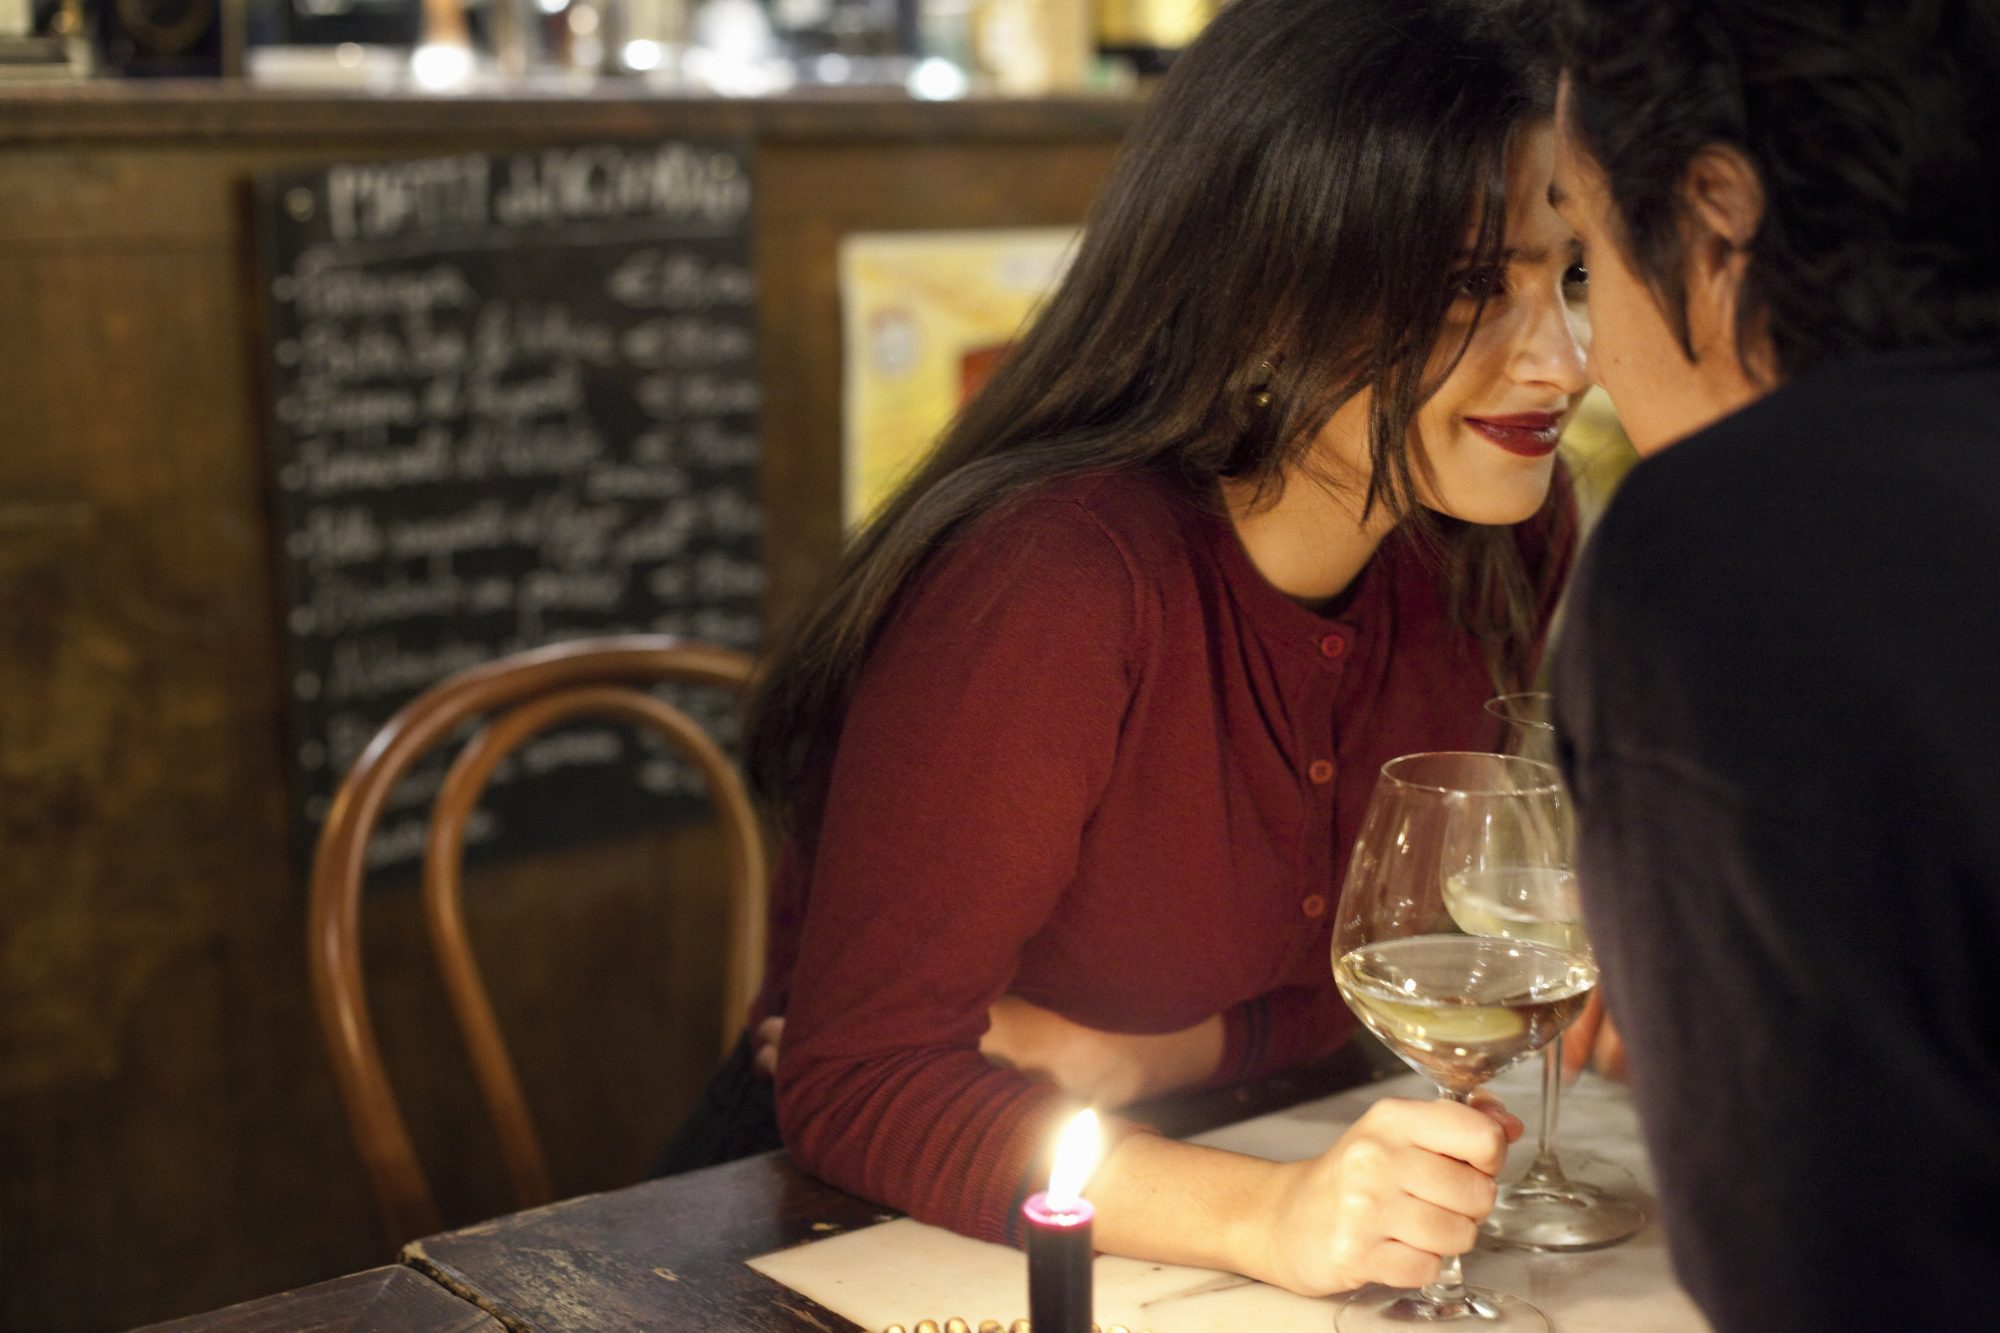 5 Women Explain Why They Cheated on Their Partners—and What It Did to Their Relationships